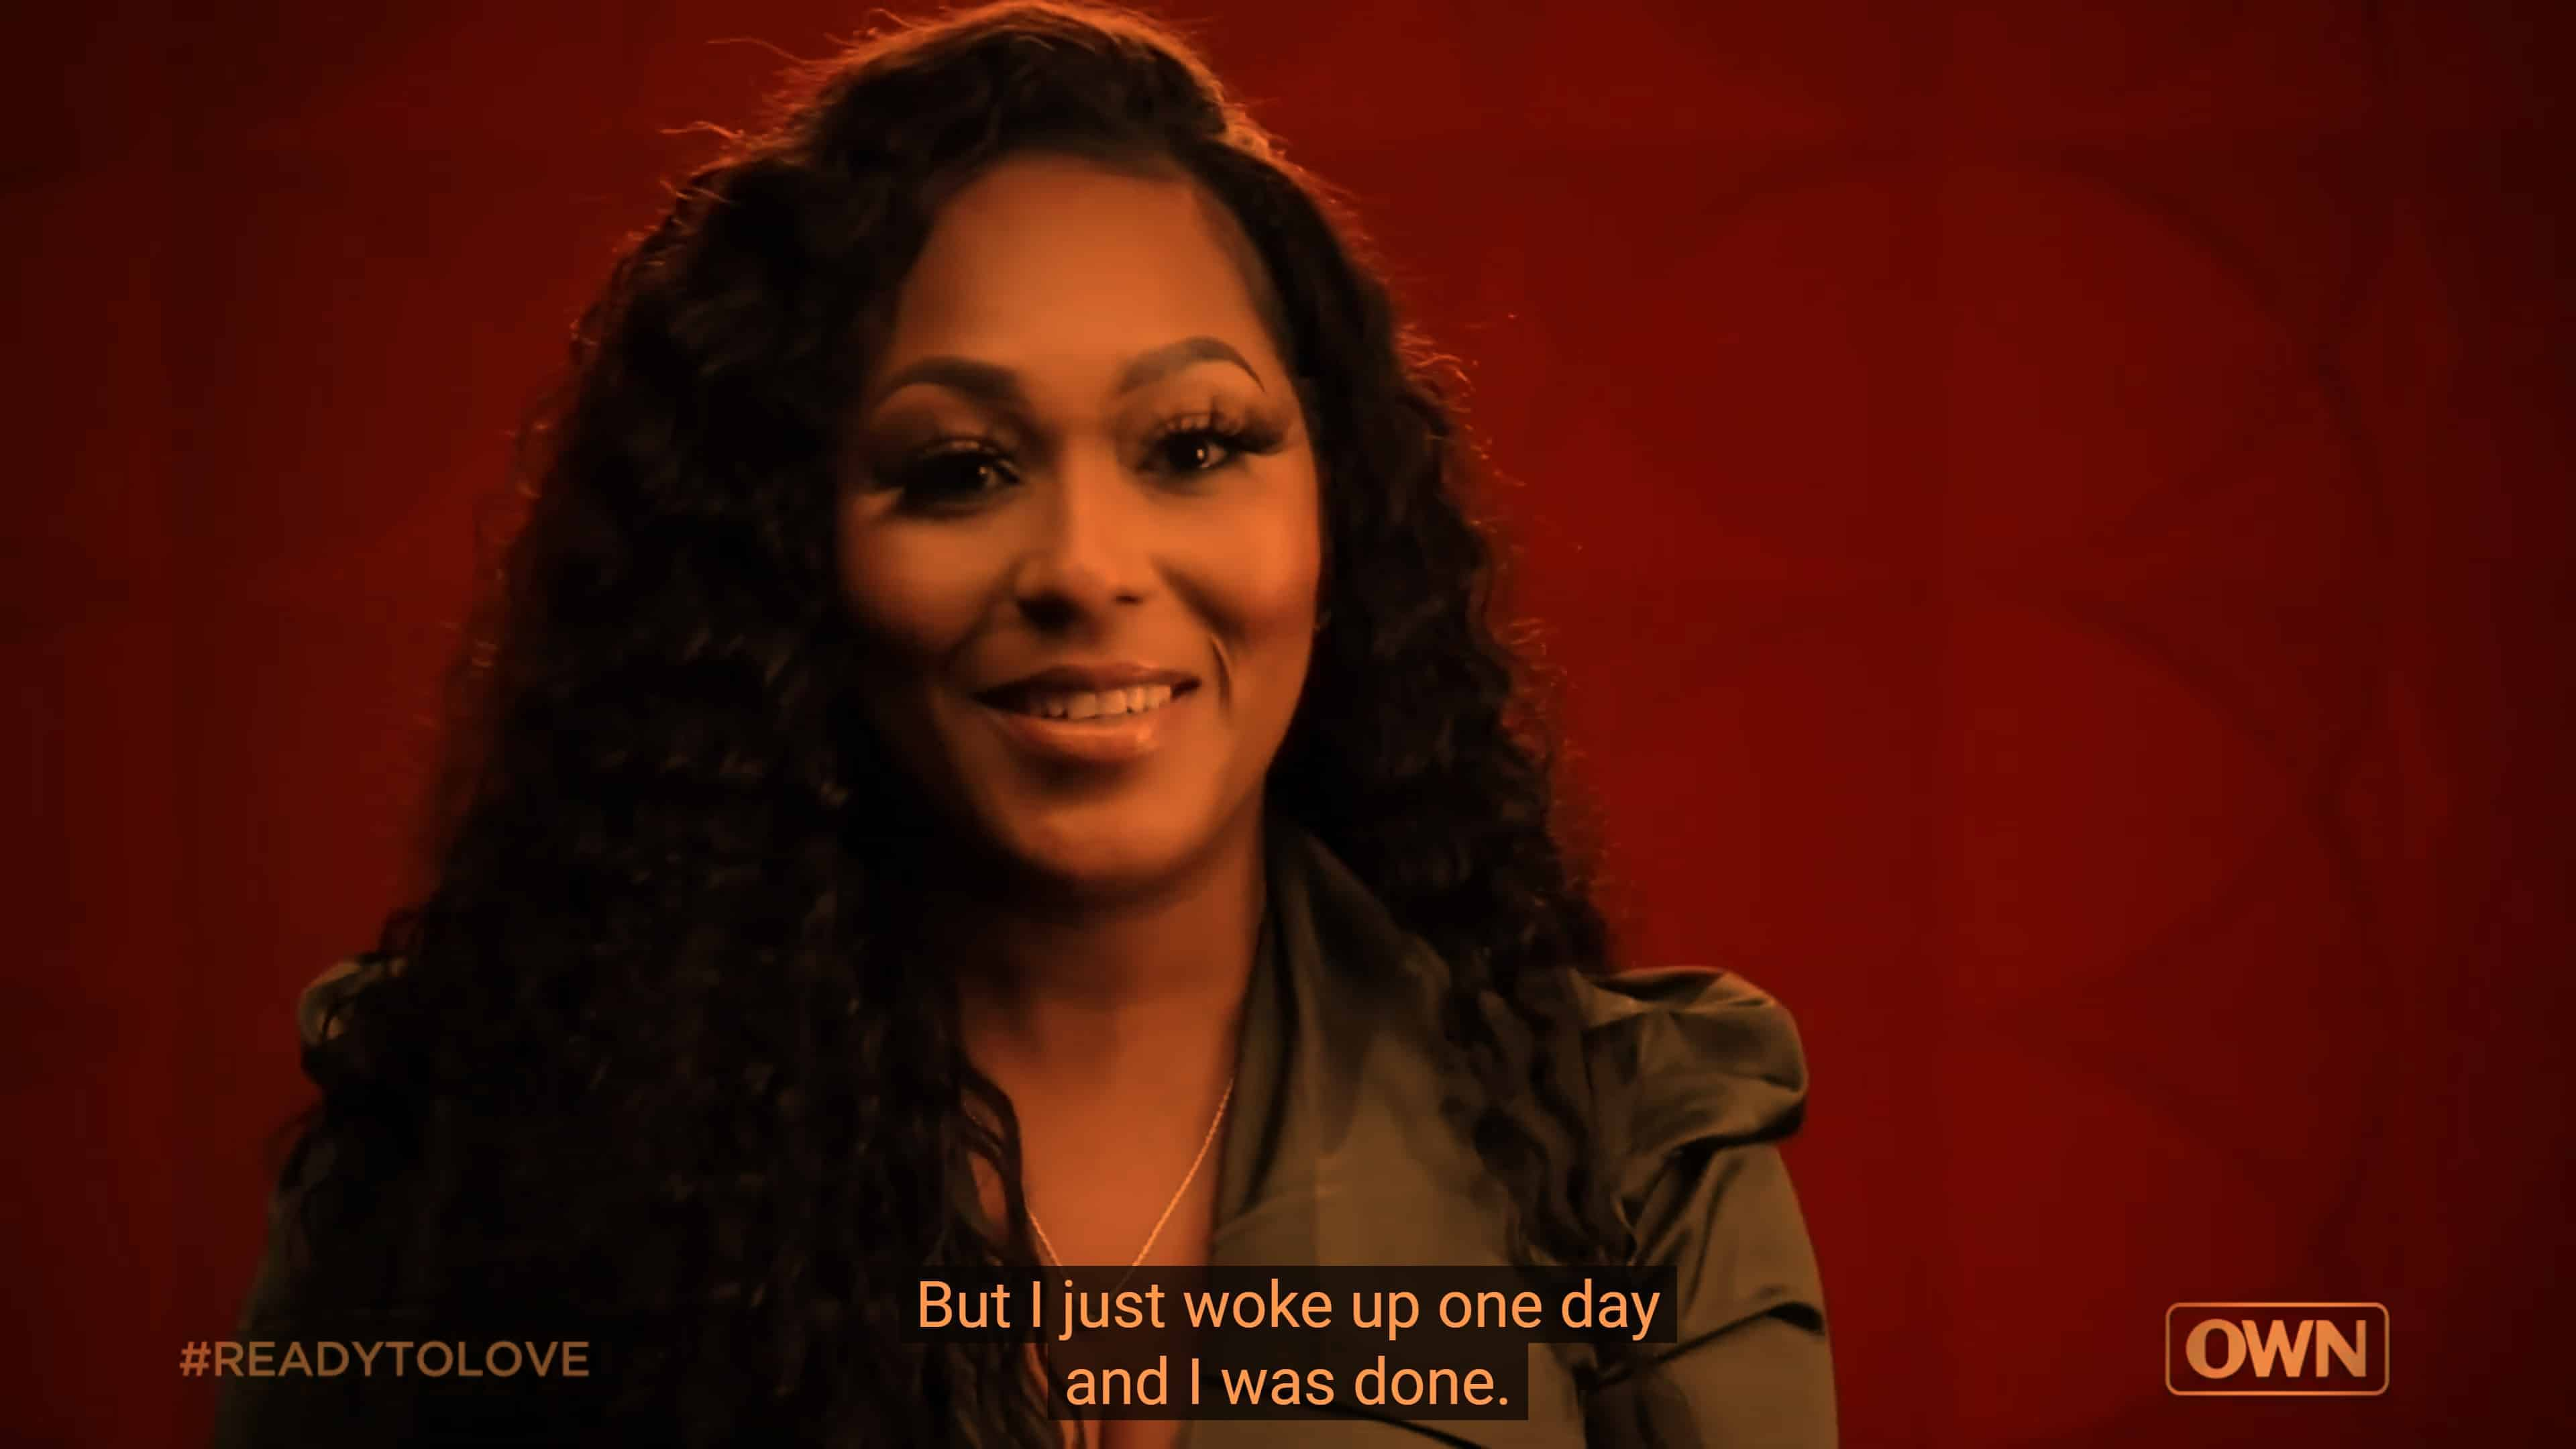 Verneashia talking about when she left her ex of 8 years